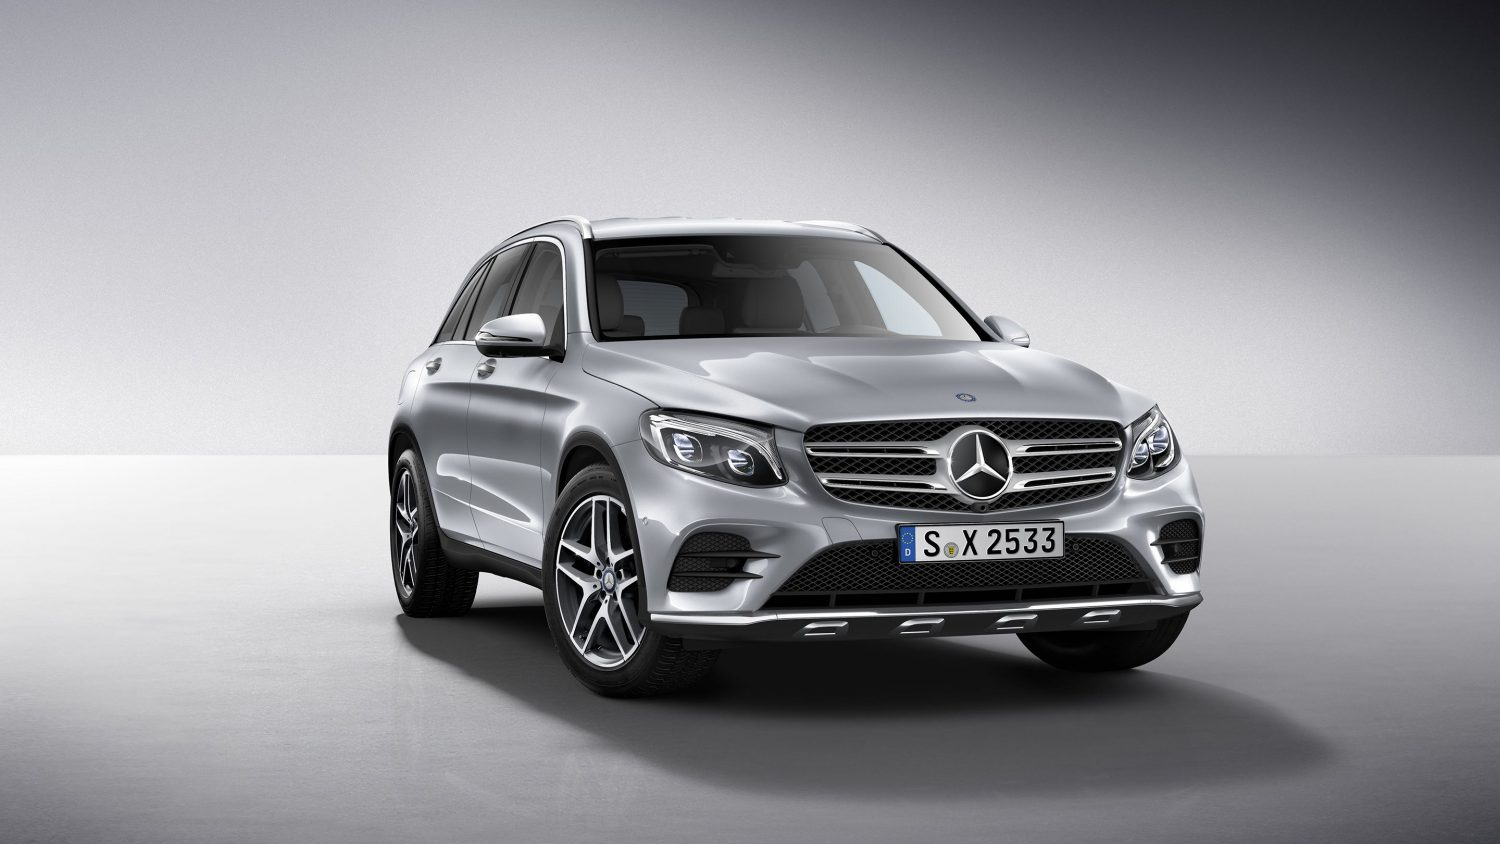 mercedes benz glc 220 d 4matic sixt leasing edition sixt leasing. Black Bedroom Furniture Sets. Home Design Ideas